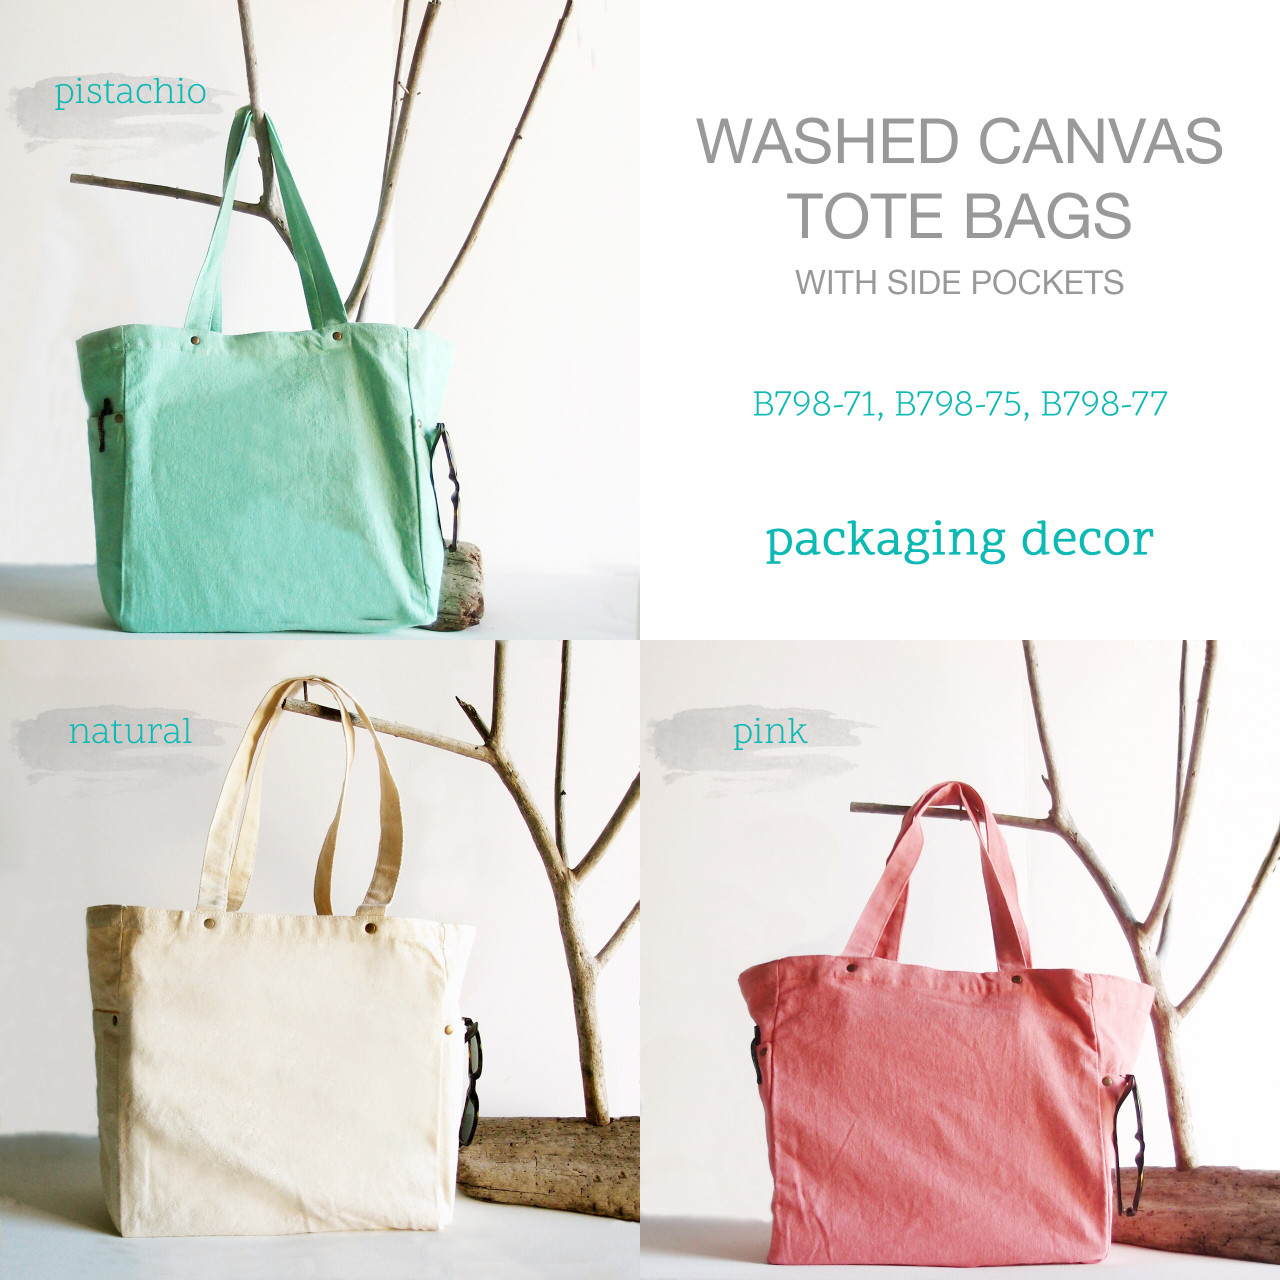 Washed Canvas Tote Bags, Wholesale Canvas Tote Bags, Natural Cotton Totes | Packaging Decor